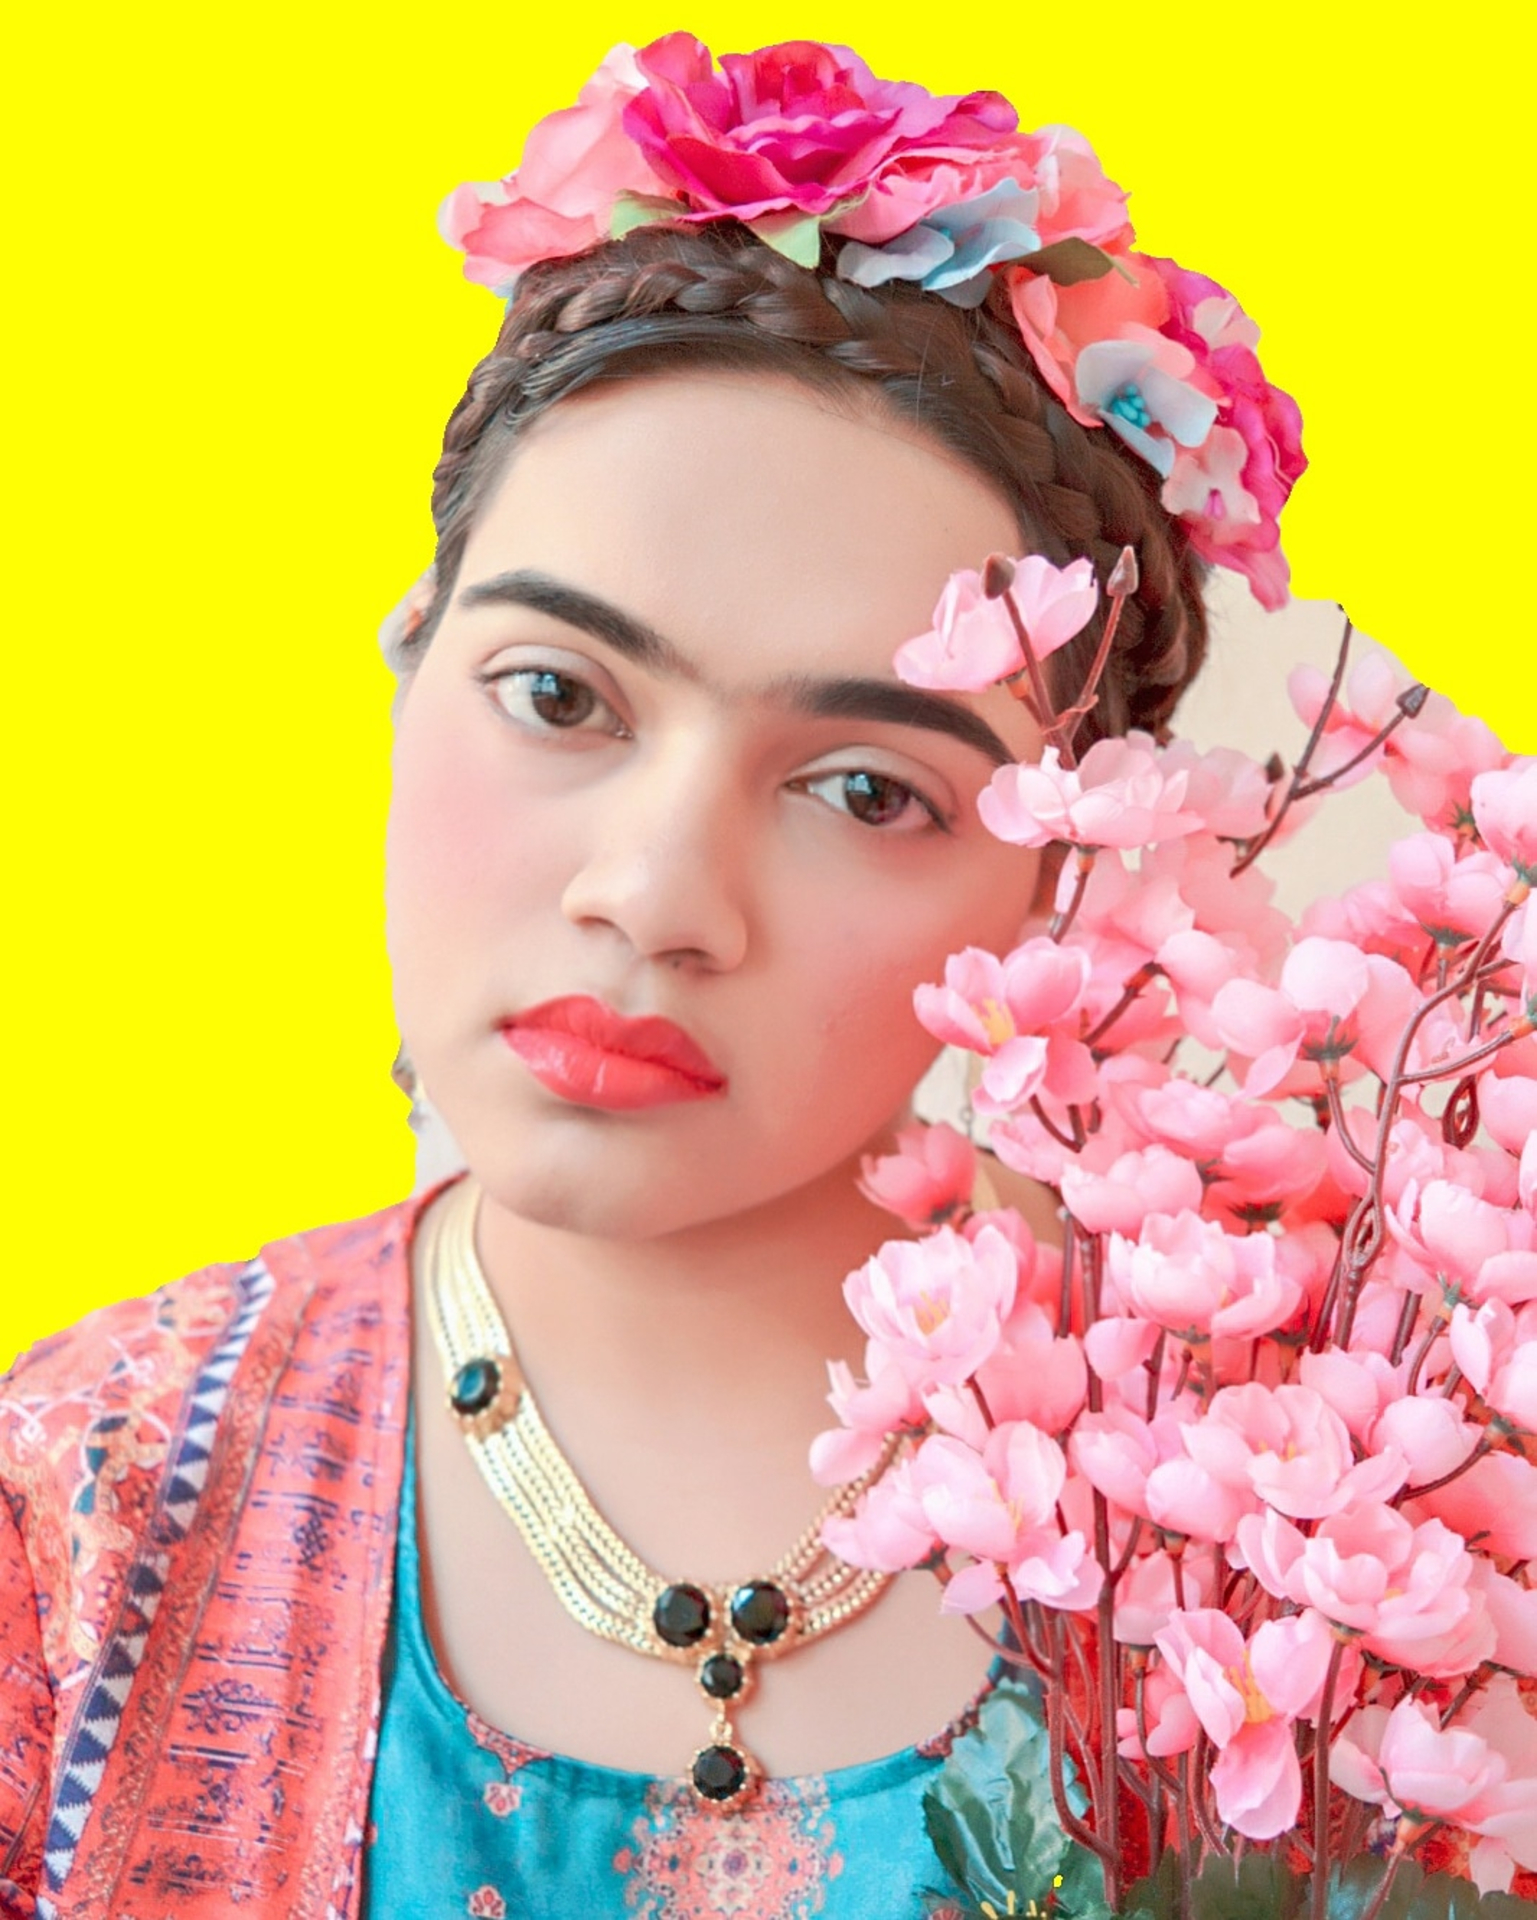 Photobeauty Series : Being Frida Kahlo image